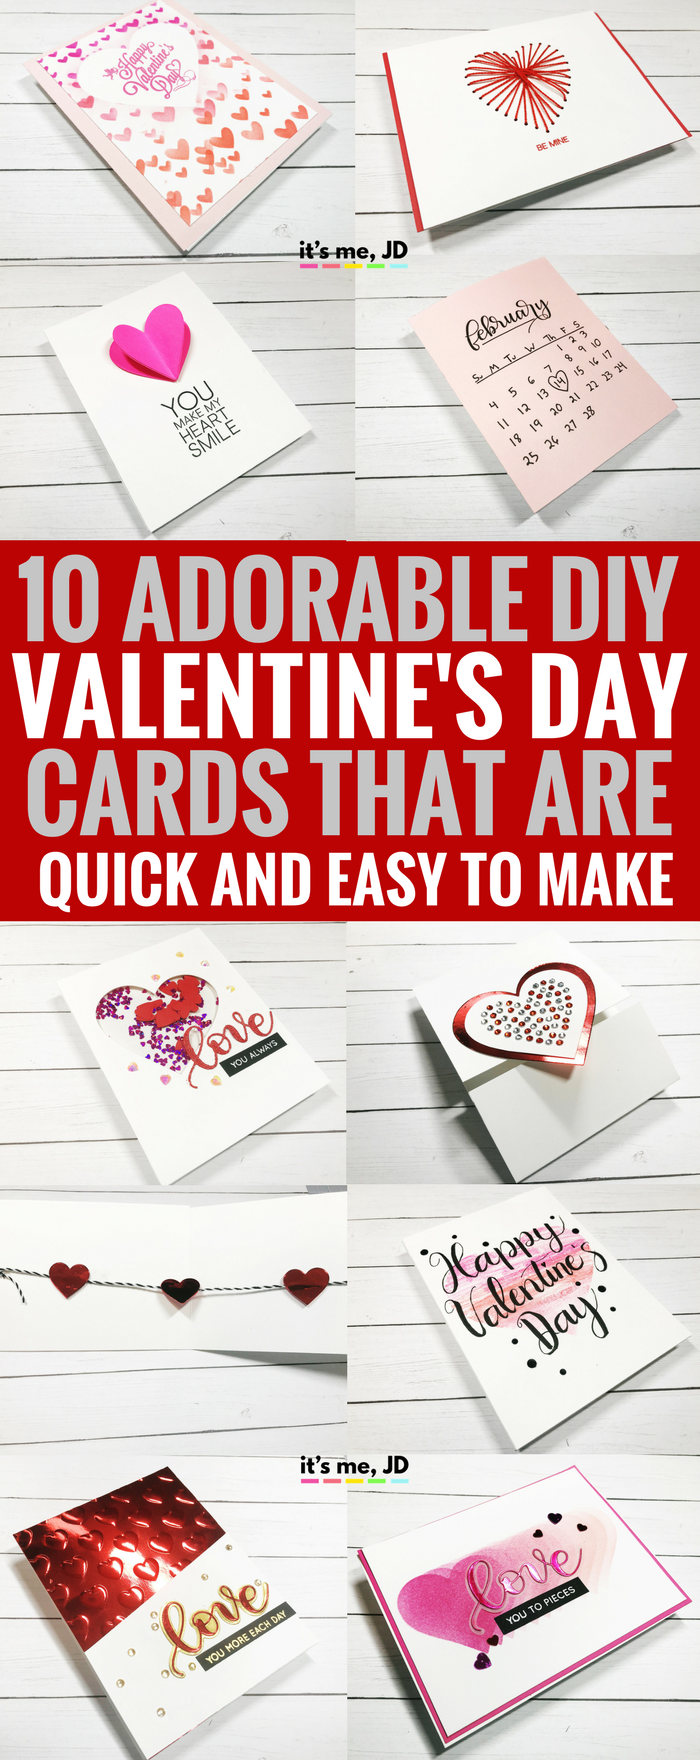 #valentinesdaycraft DIY Valentine's Day Card, Quick, Easy, Handmade, Love, Couple, Craft